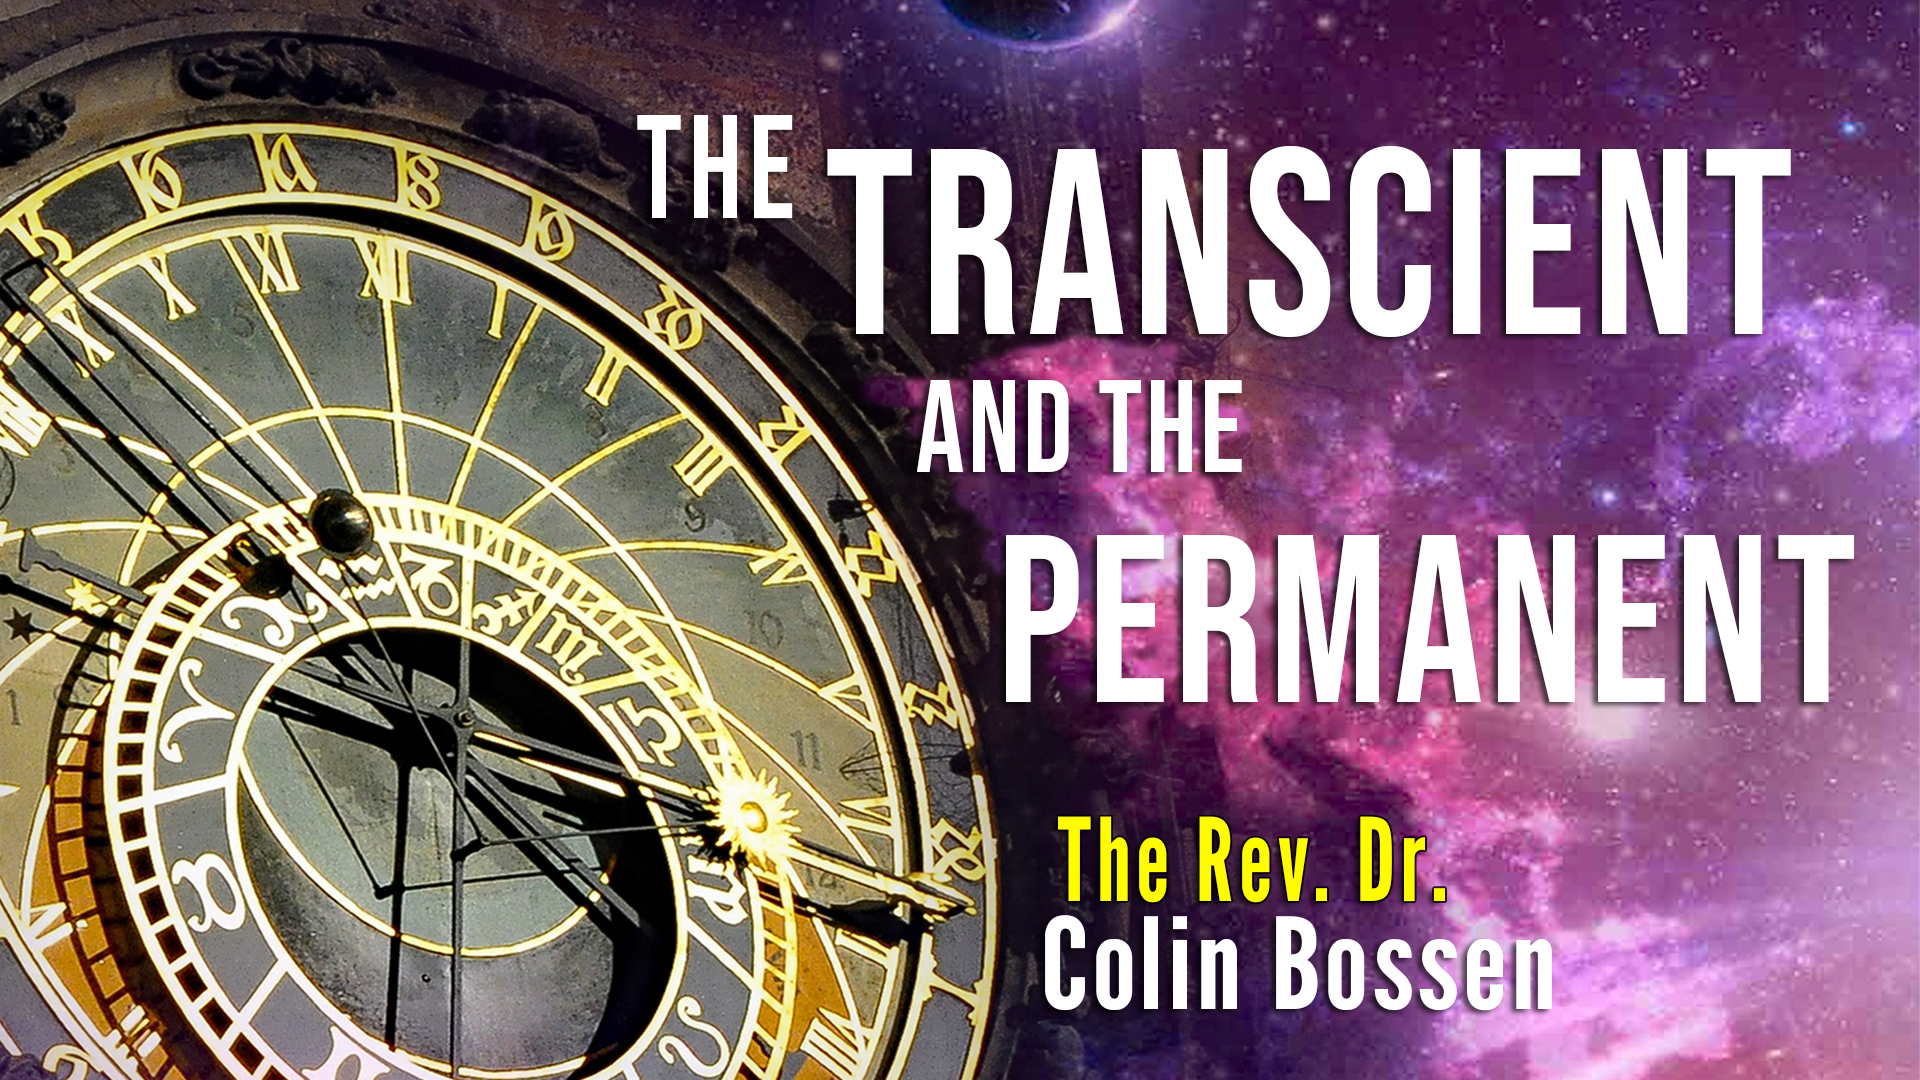 The Transient and the Permanent